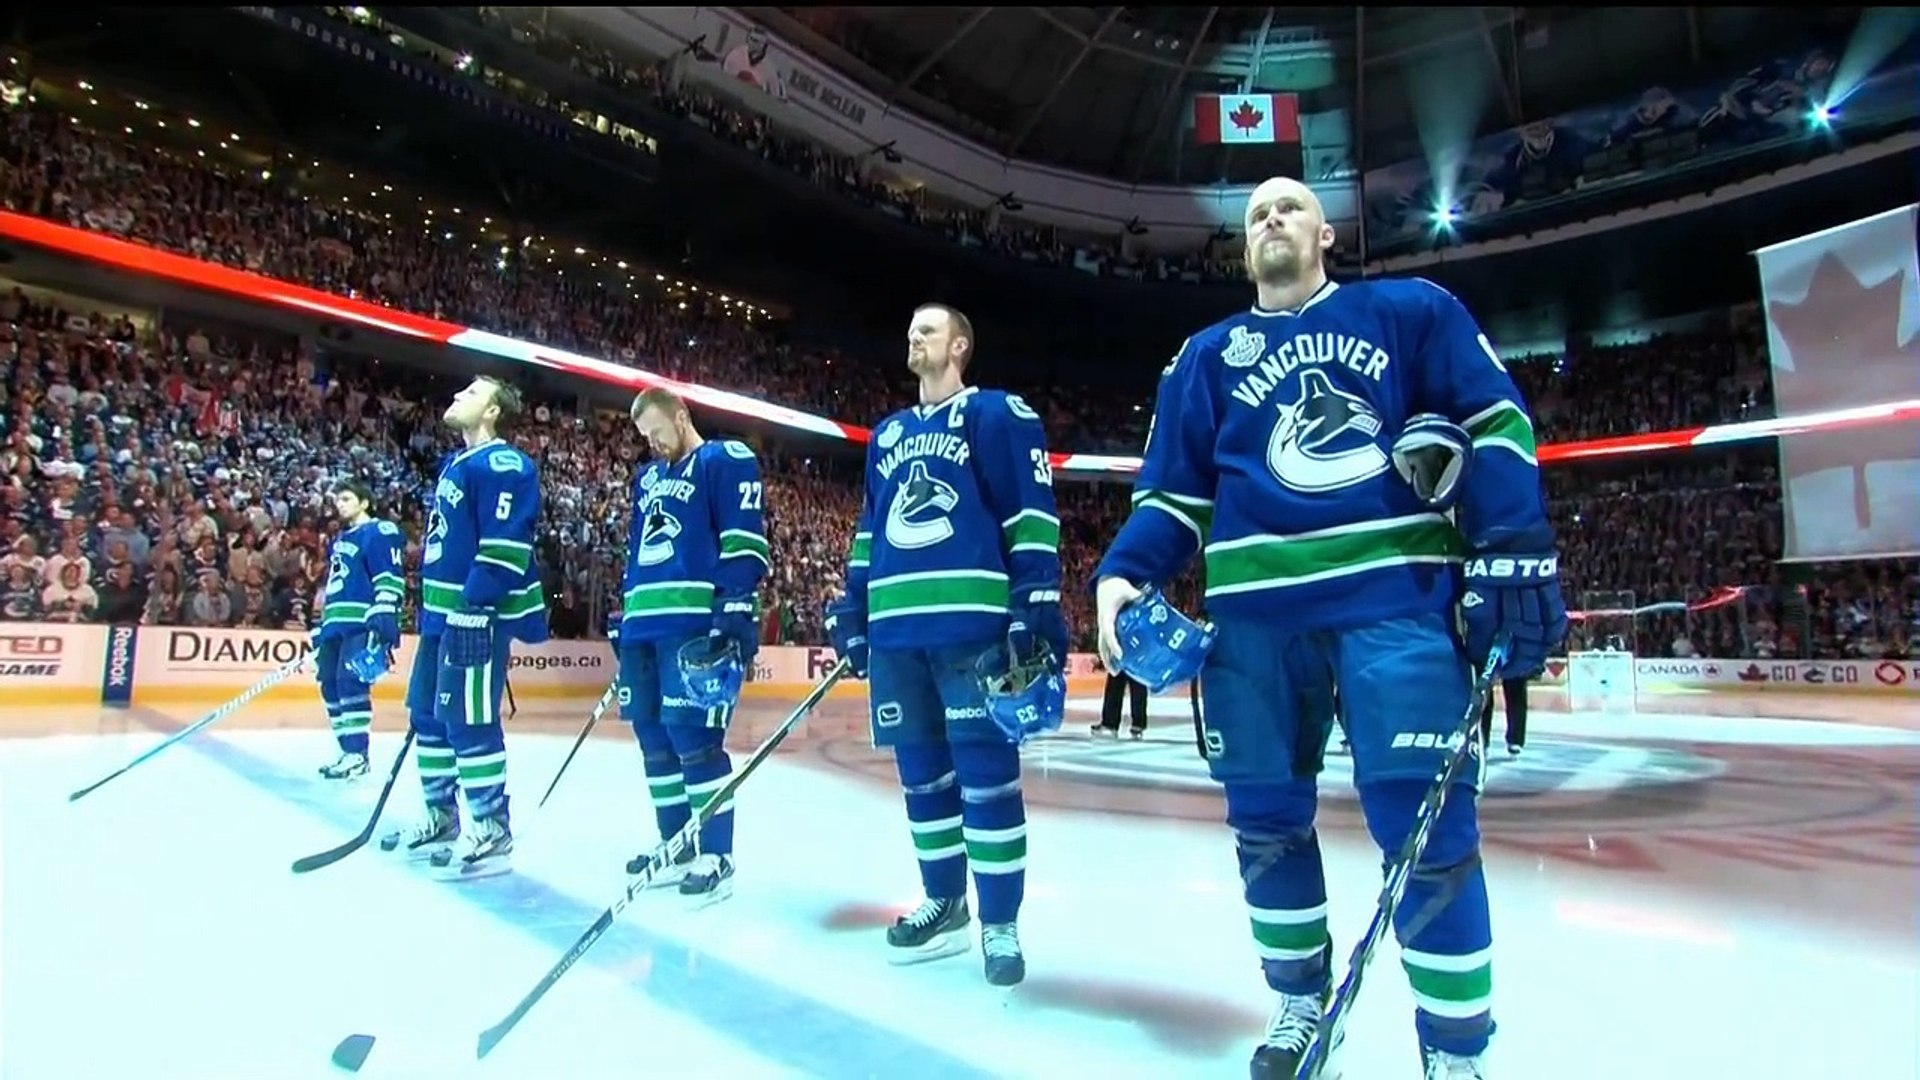 NHL 2011 Stanley Cup Final G5 - Vancouver Canucks vs Boston Bruins  2011-06-10